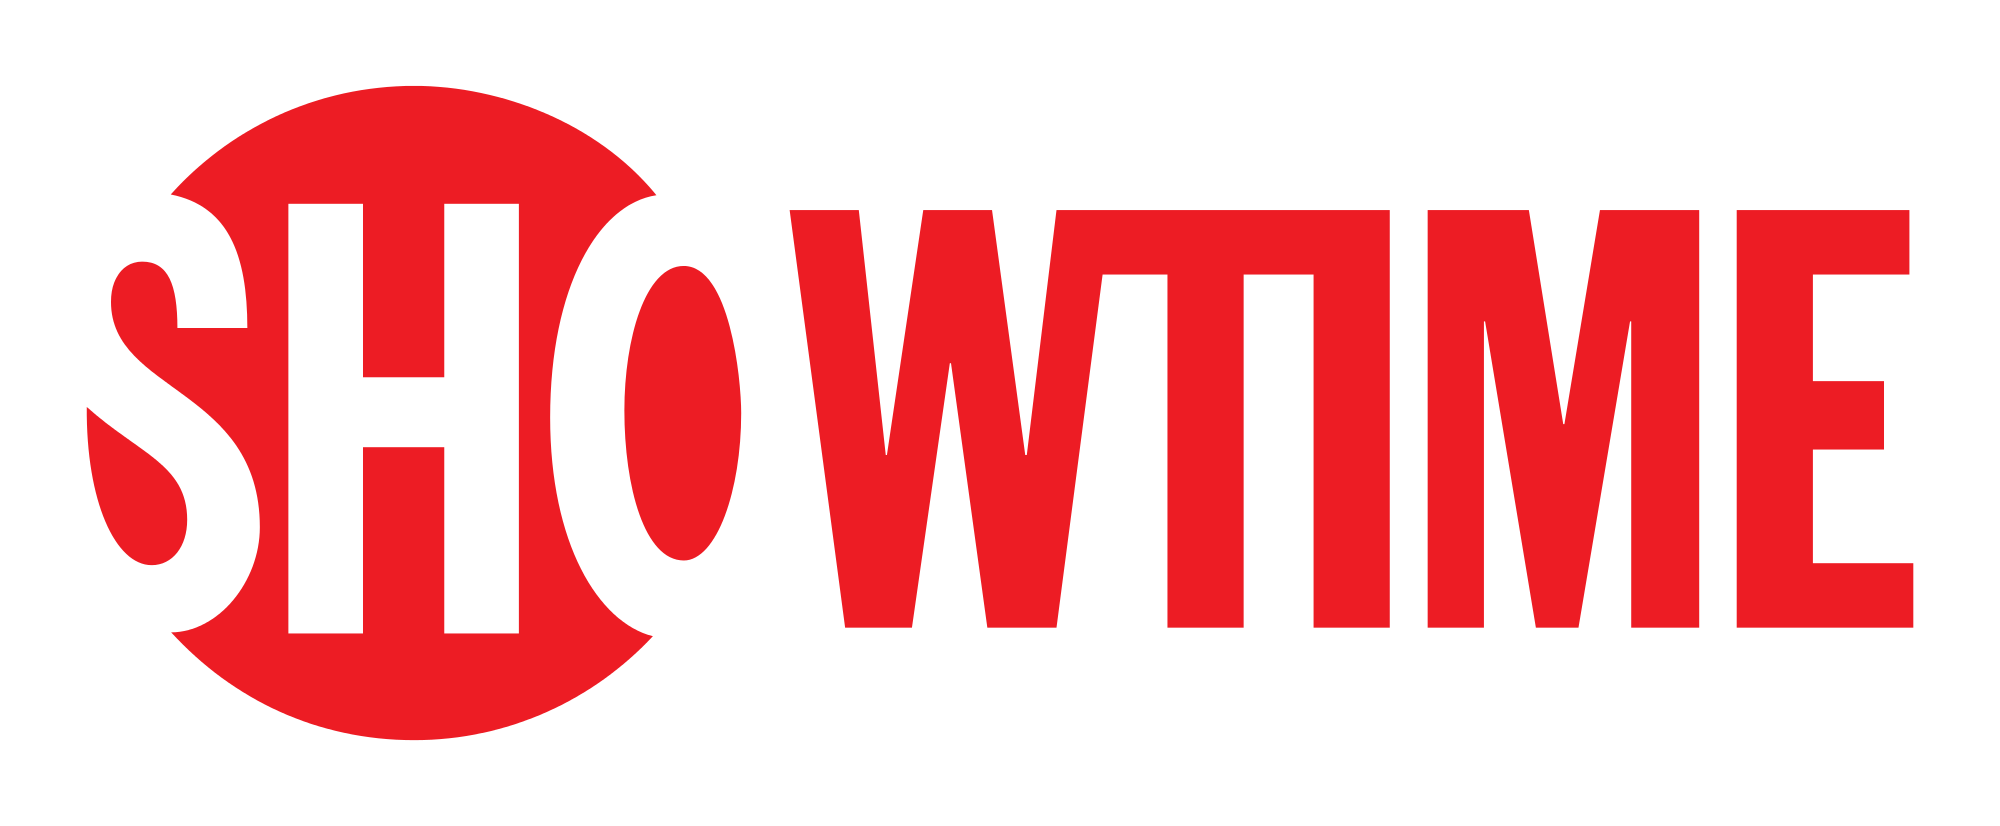 Transparent hbo network. Image a showtime logo